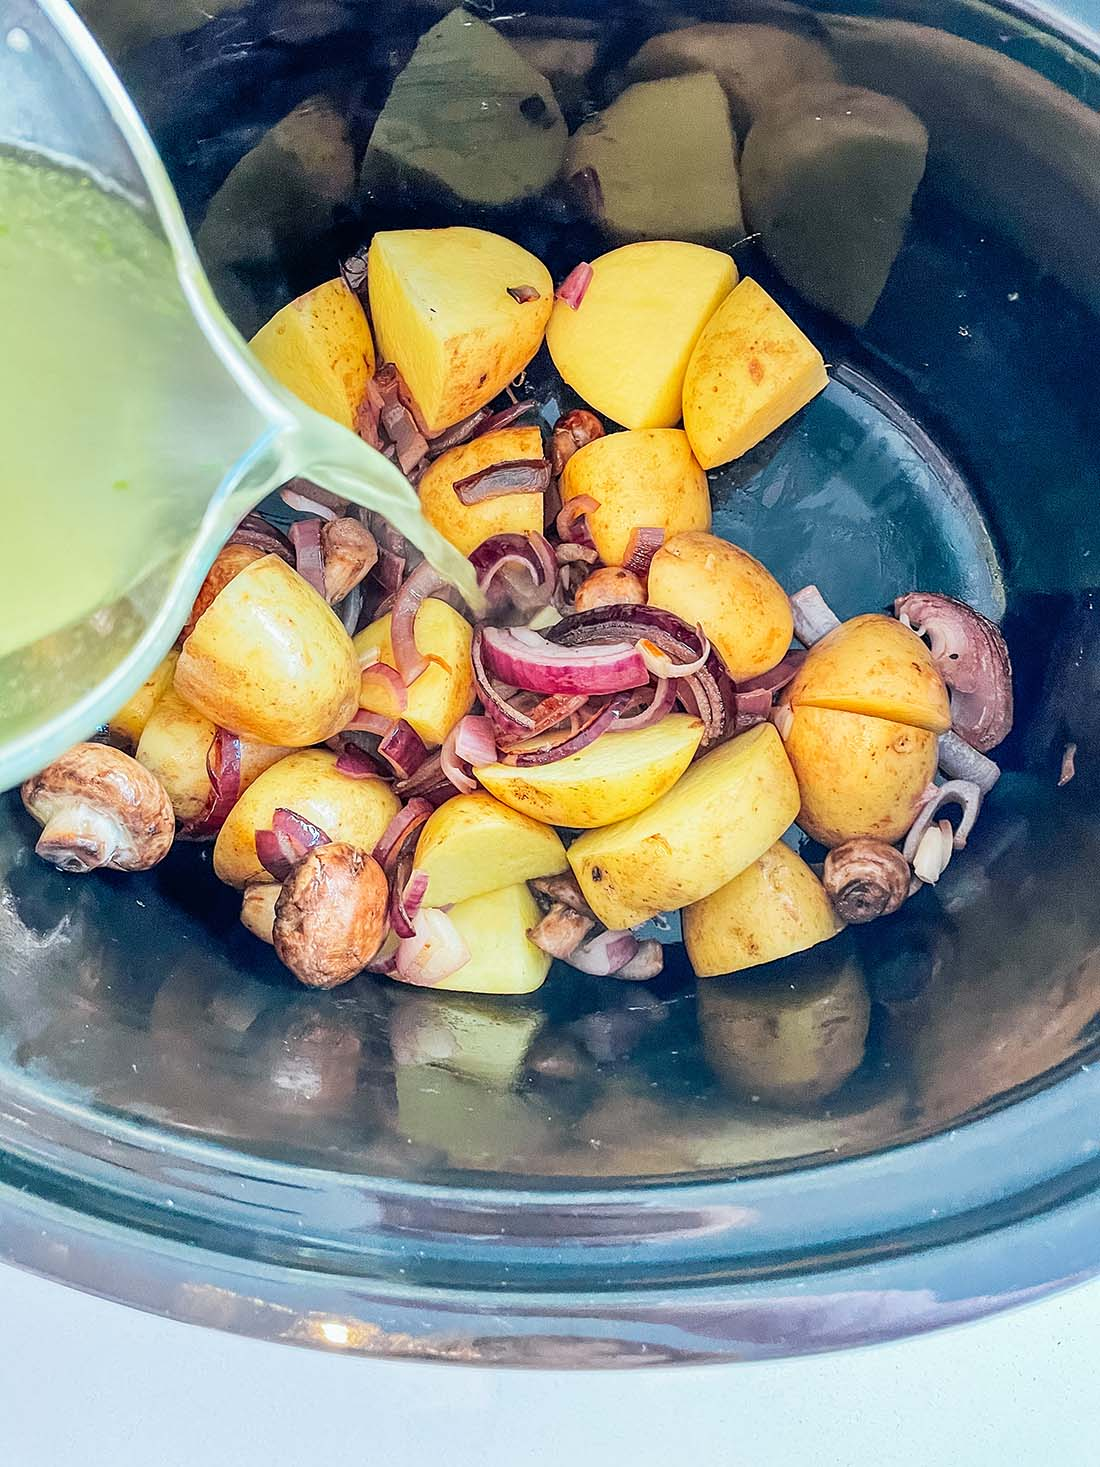 Add the potatoes and stock to the slowcooker, before adding the fried onion and mushrooms